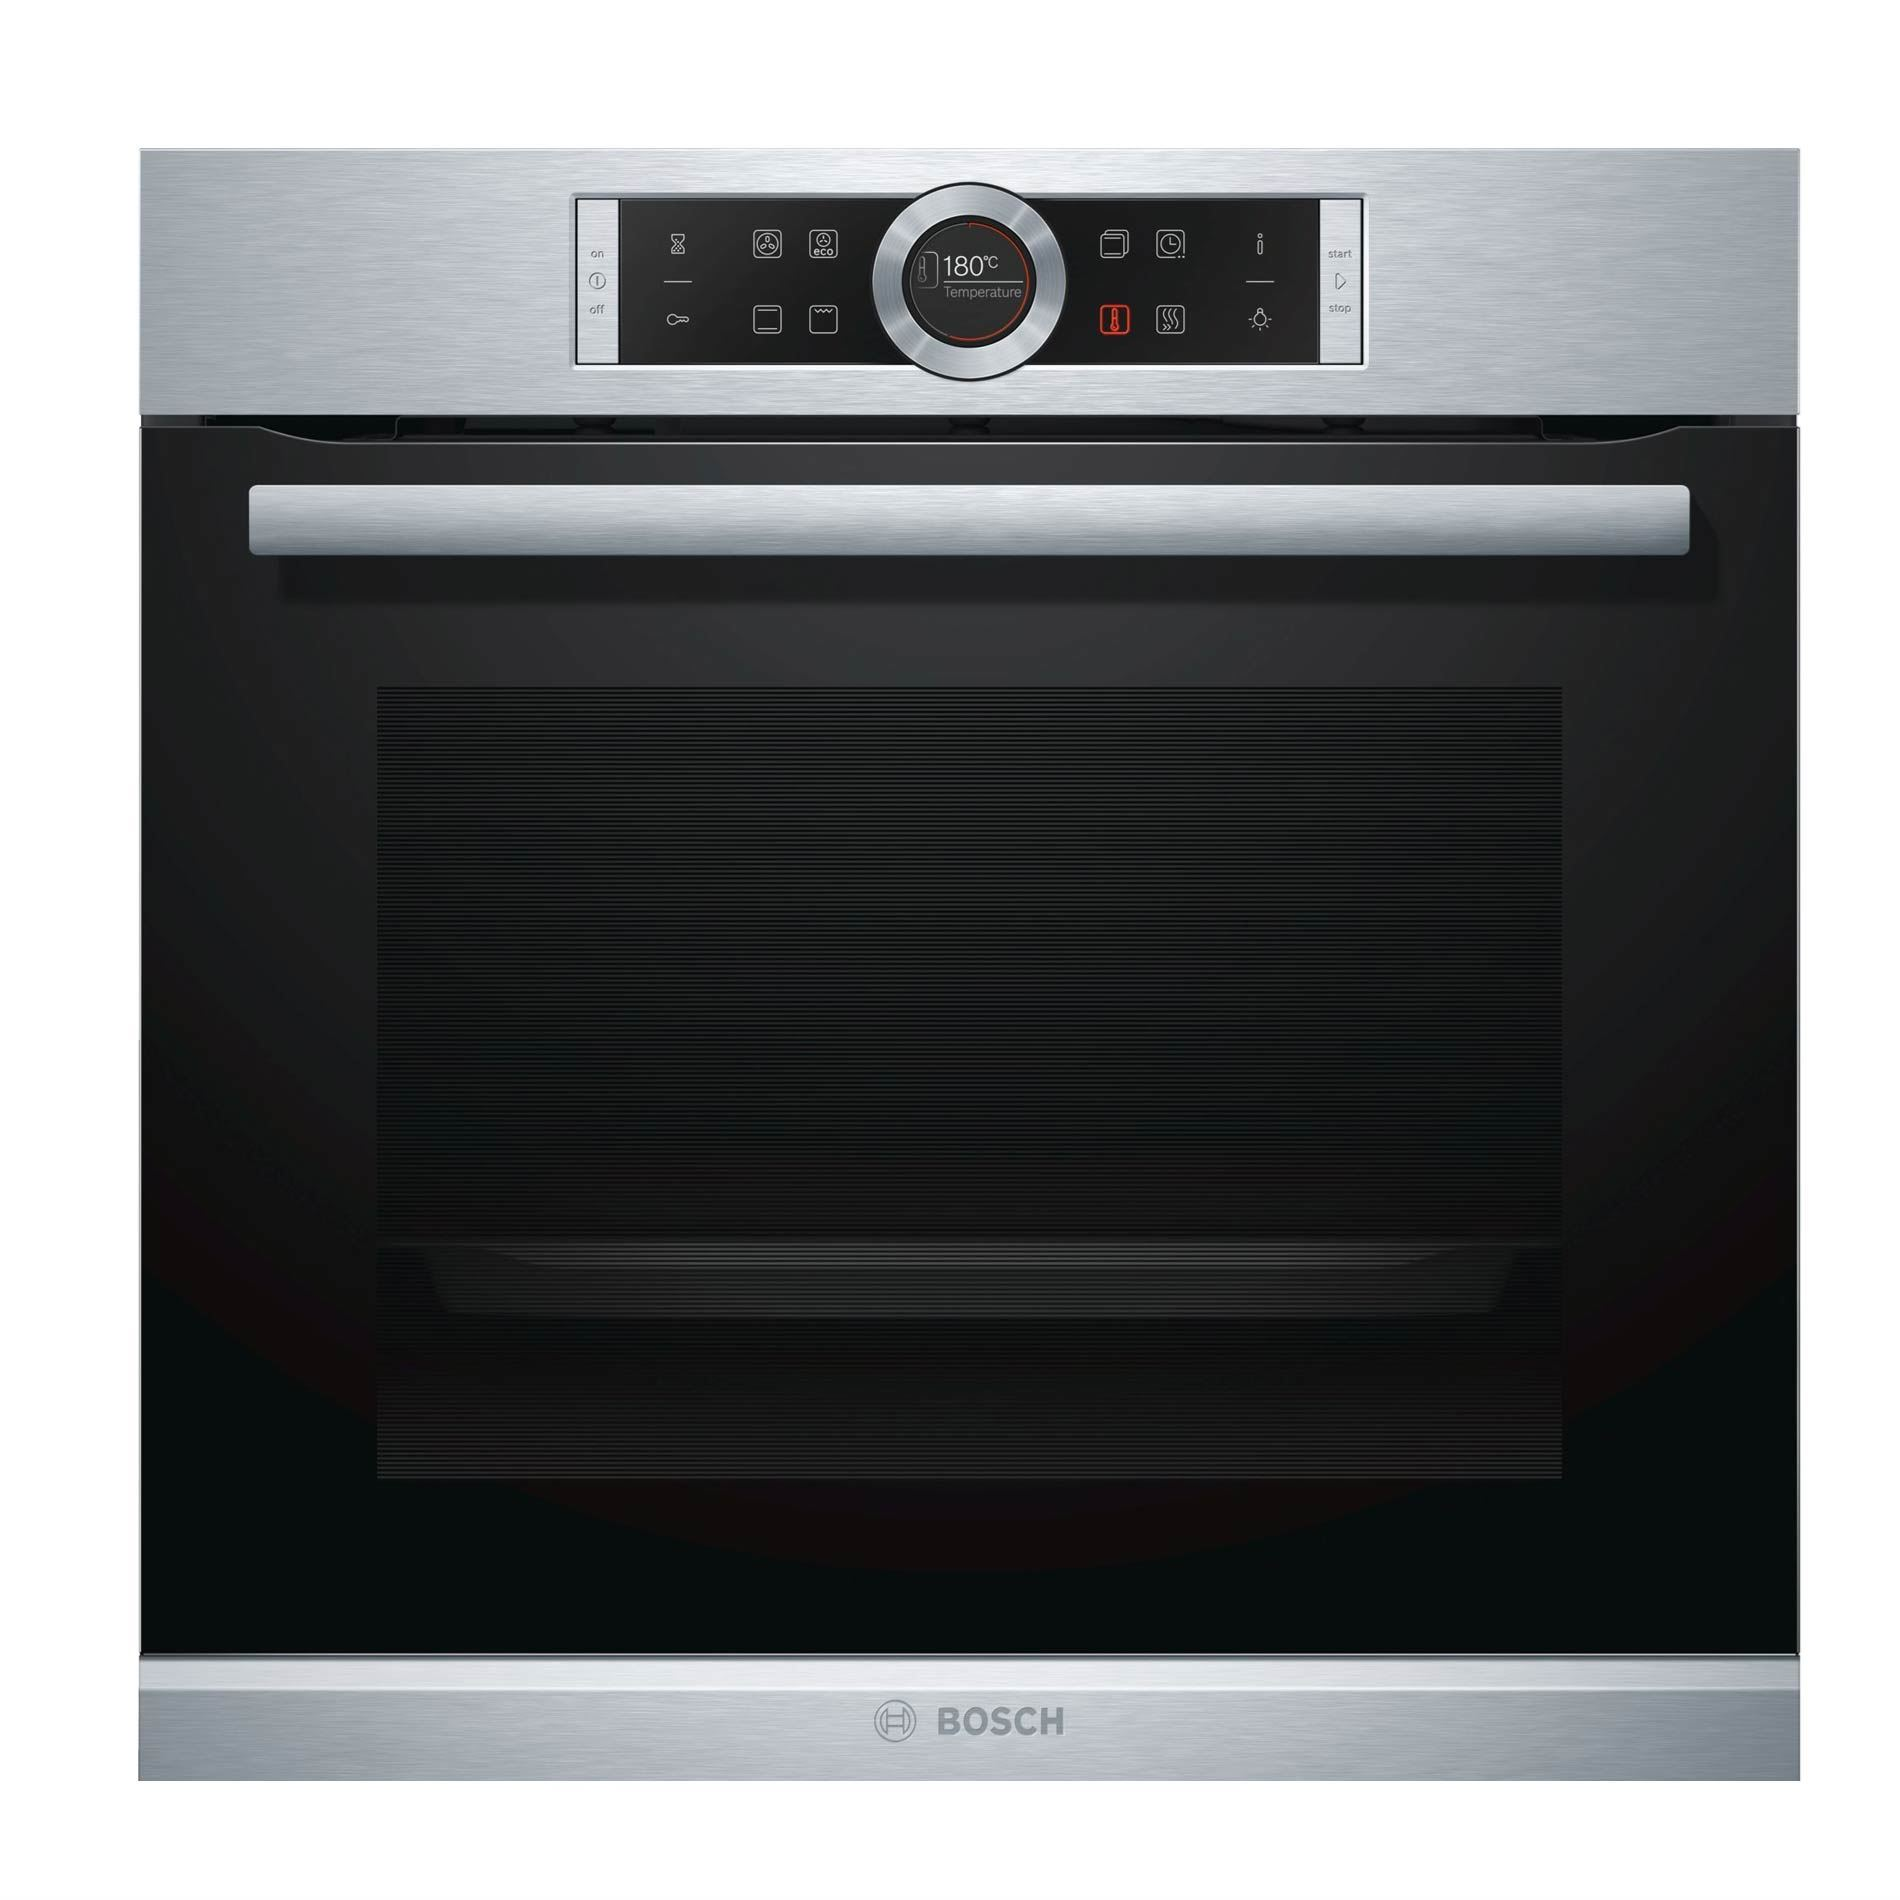 Picture of HBG633BS1B Built-in Single Oven